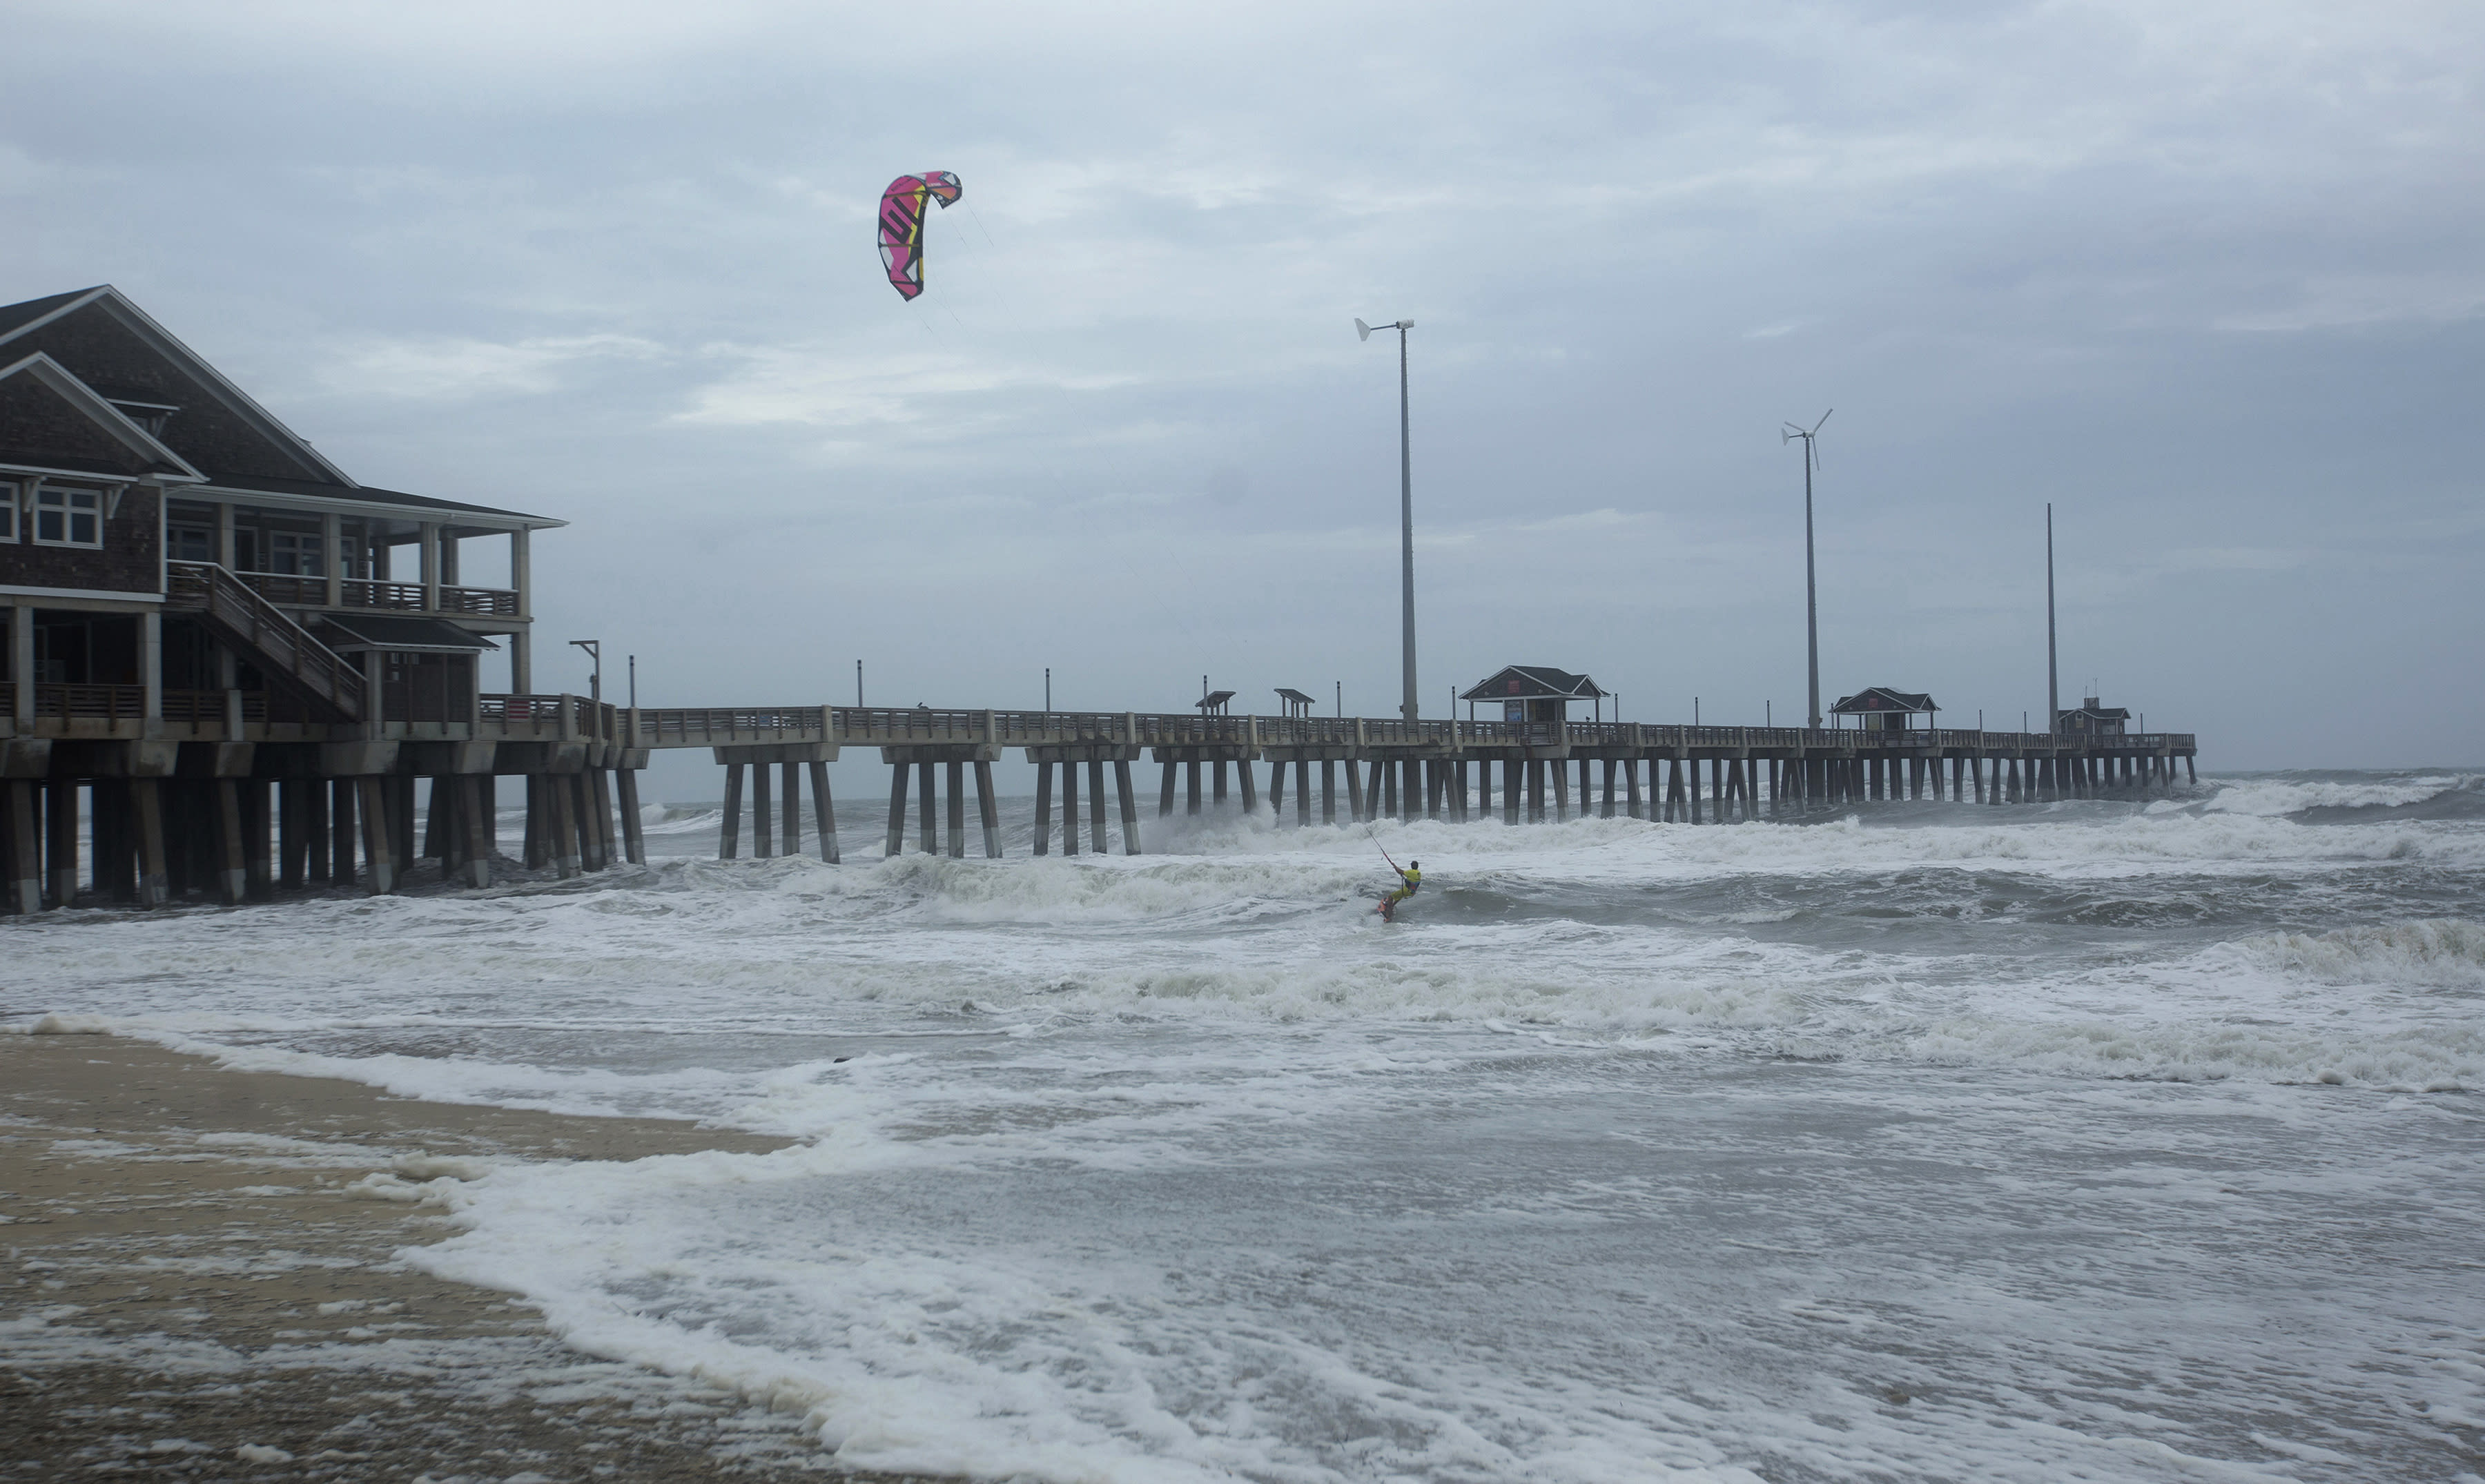 Kite Boarder Dimitri Maramenides heads out next to Jennette's Pier in Nags Head, N.C., as Hurricane Florence makes landfall further south on Friday, Sept, 14, 2018. (L. Todd Spencer/The Virginian-Pilot via AP)